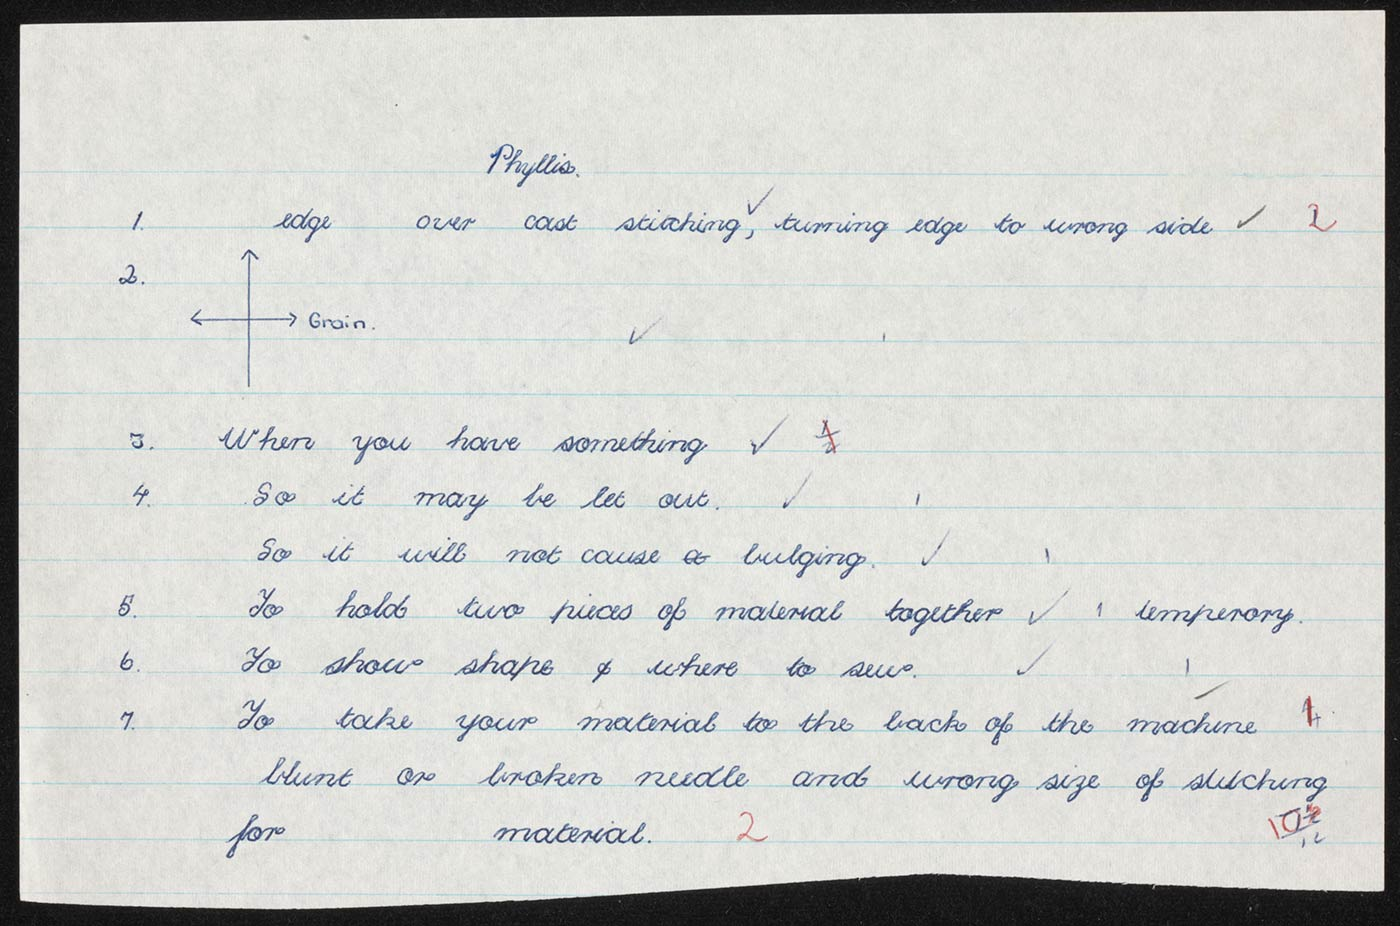 Handwritten lined half-page with the heading 'Phyllis'. The text in blue ballpoint pen consists of answers to questions (not included) which have been corrected. The answers have been given a mark of 10.5 out of 12. - click to view larger image